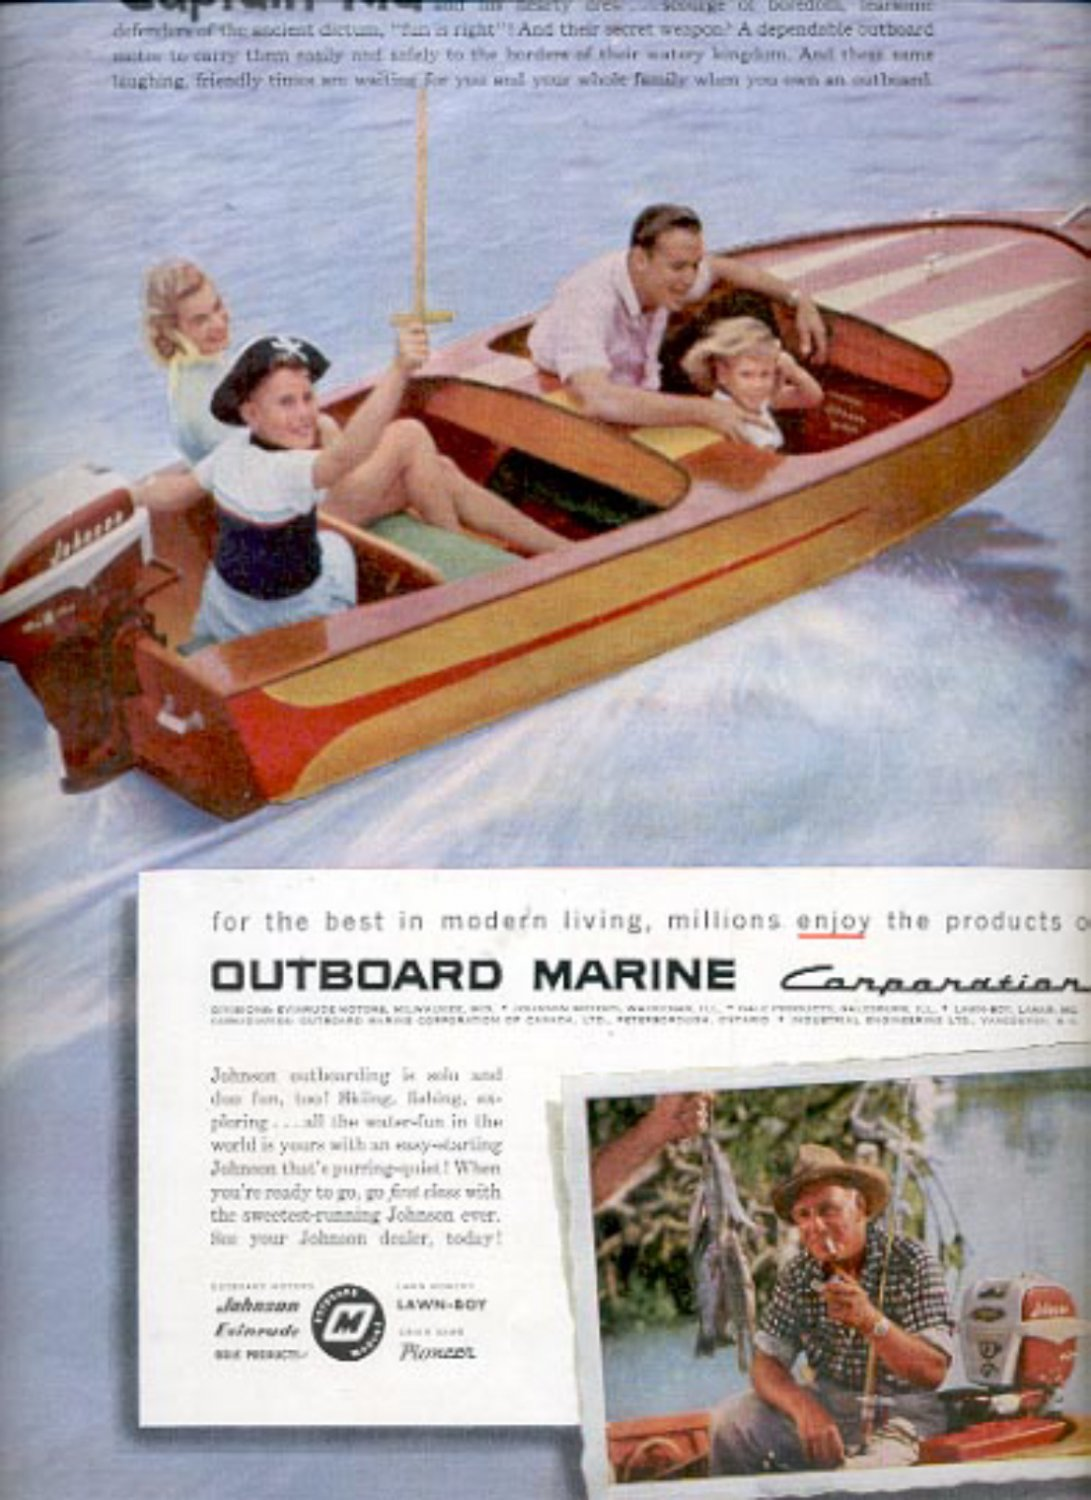 1957  Outboard Marine Corporation  ad (# 4960)